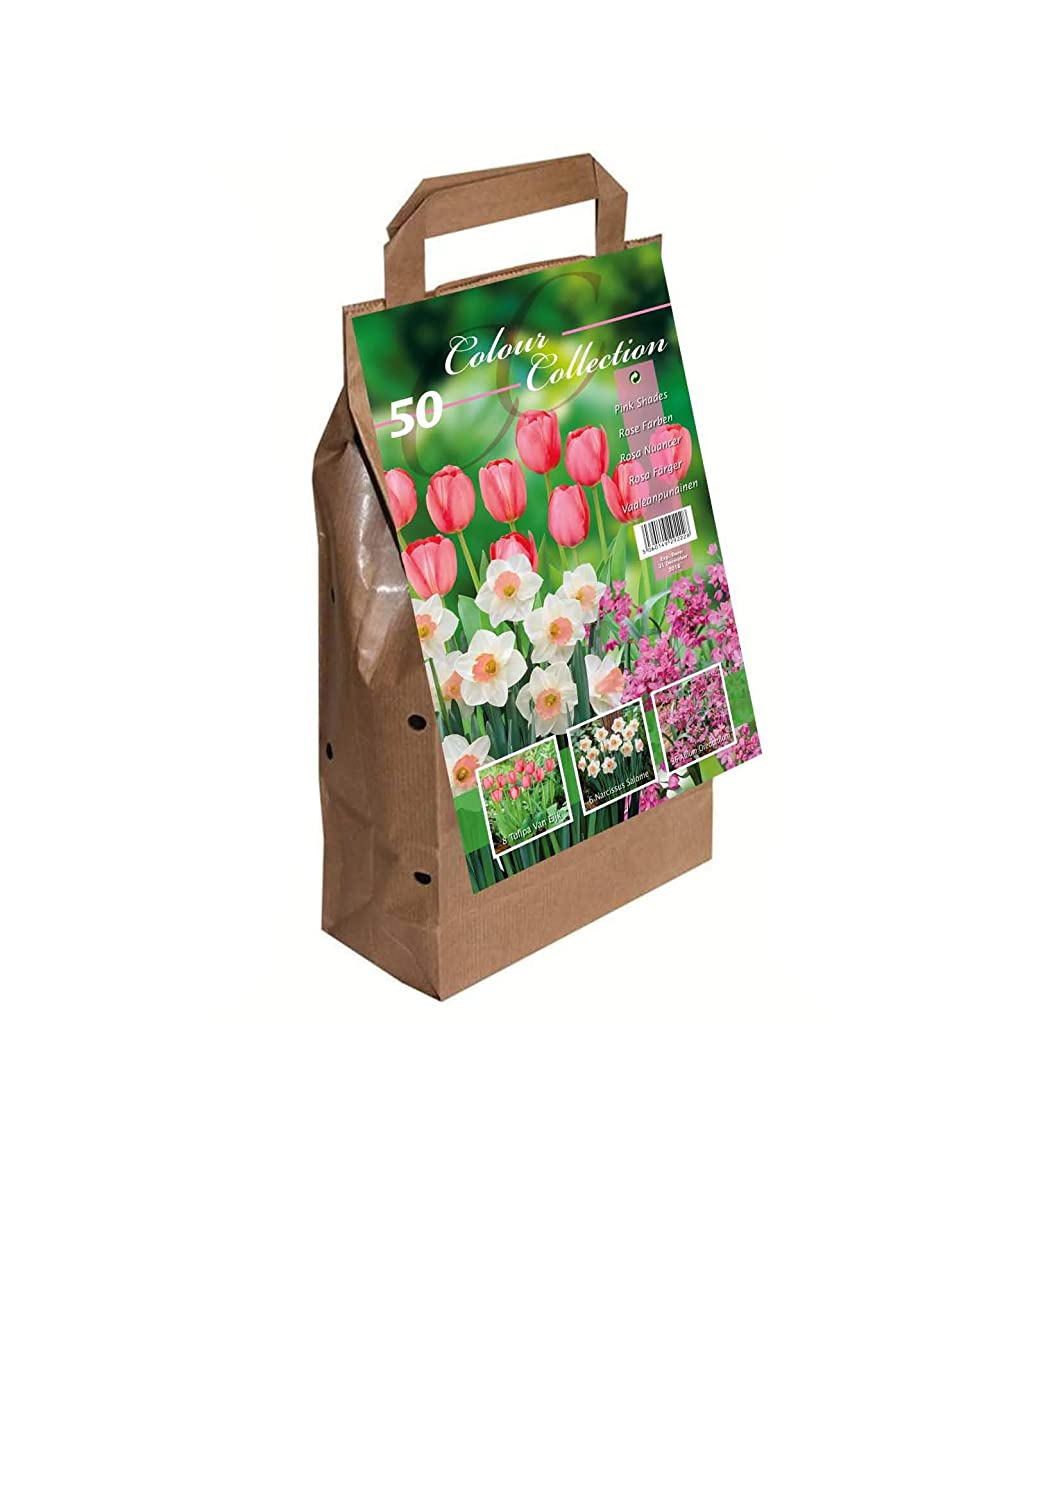 Colour Collection Spring Flower Bulbs - Pink (Pack of 50) Greenbrokers Limited FB14